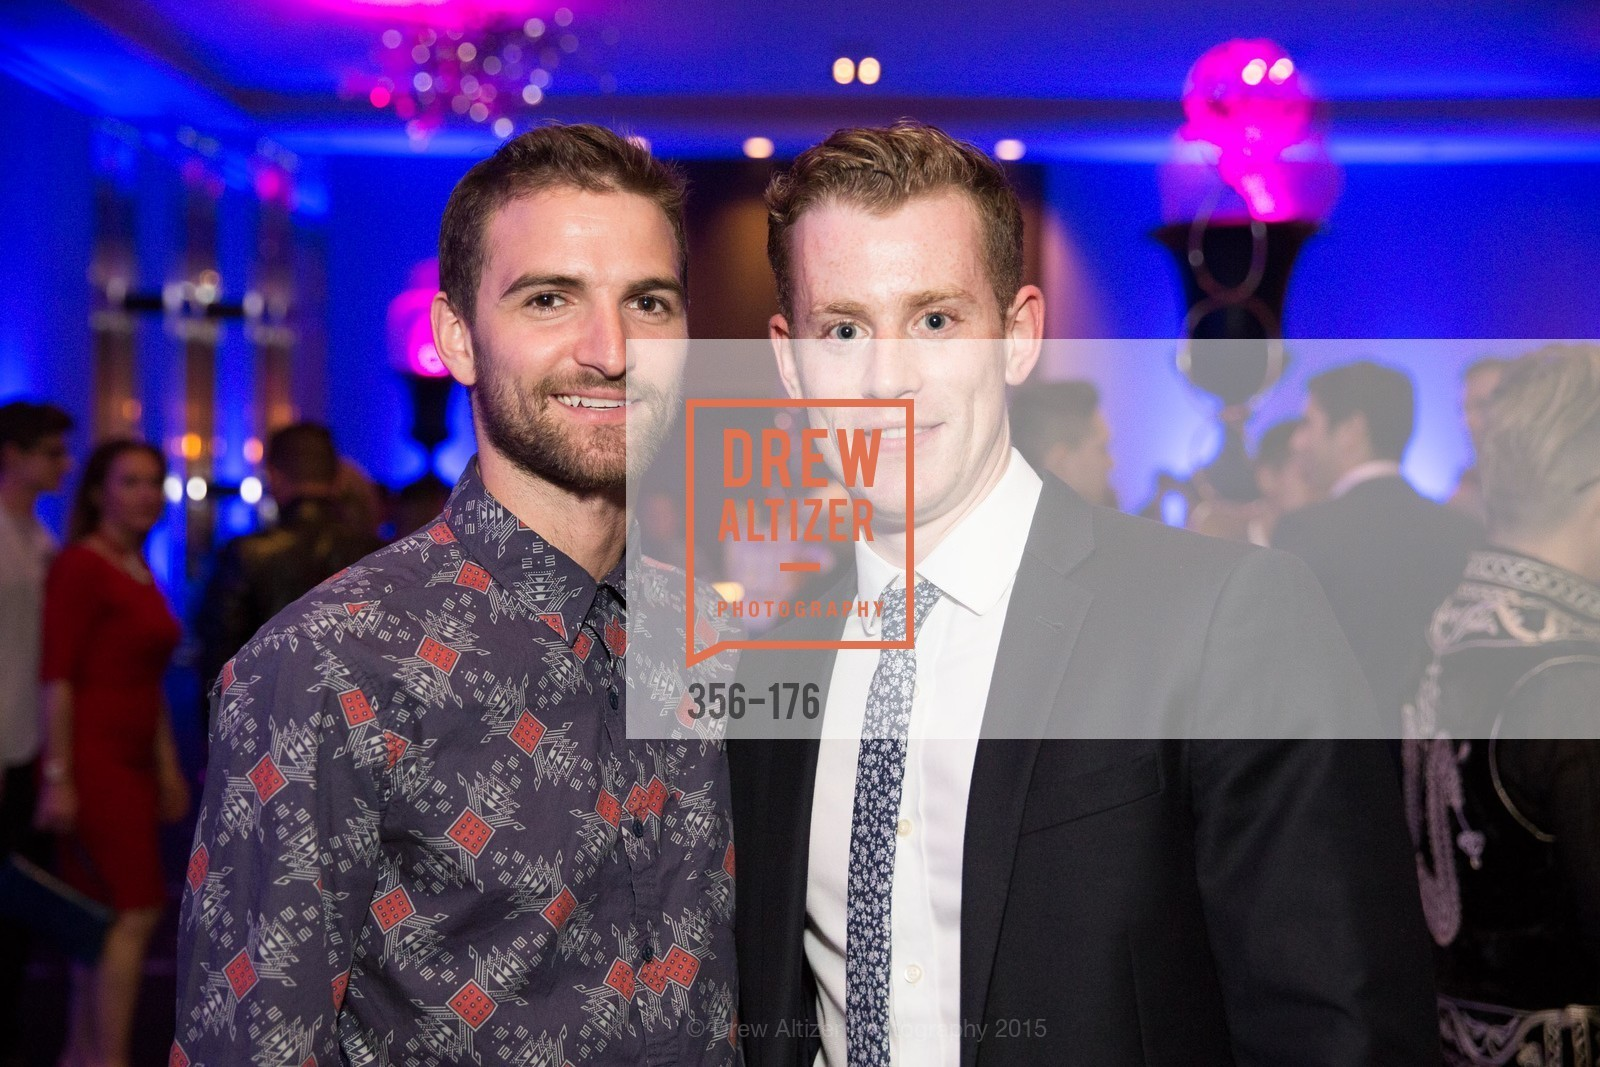 JD Scalzo, Ryan Naranjo, VIP Pride Celebration 2015, St. Regis, June 18th, 2015,Drew Altizer, Drew Altizer Photography, full-service agency, private events, San Francisco photographer, photographer california